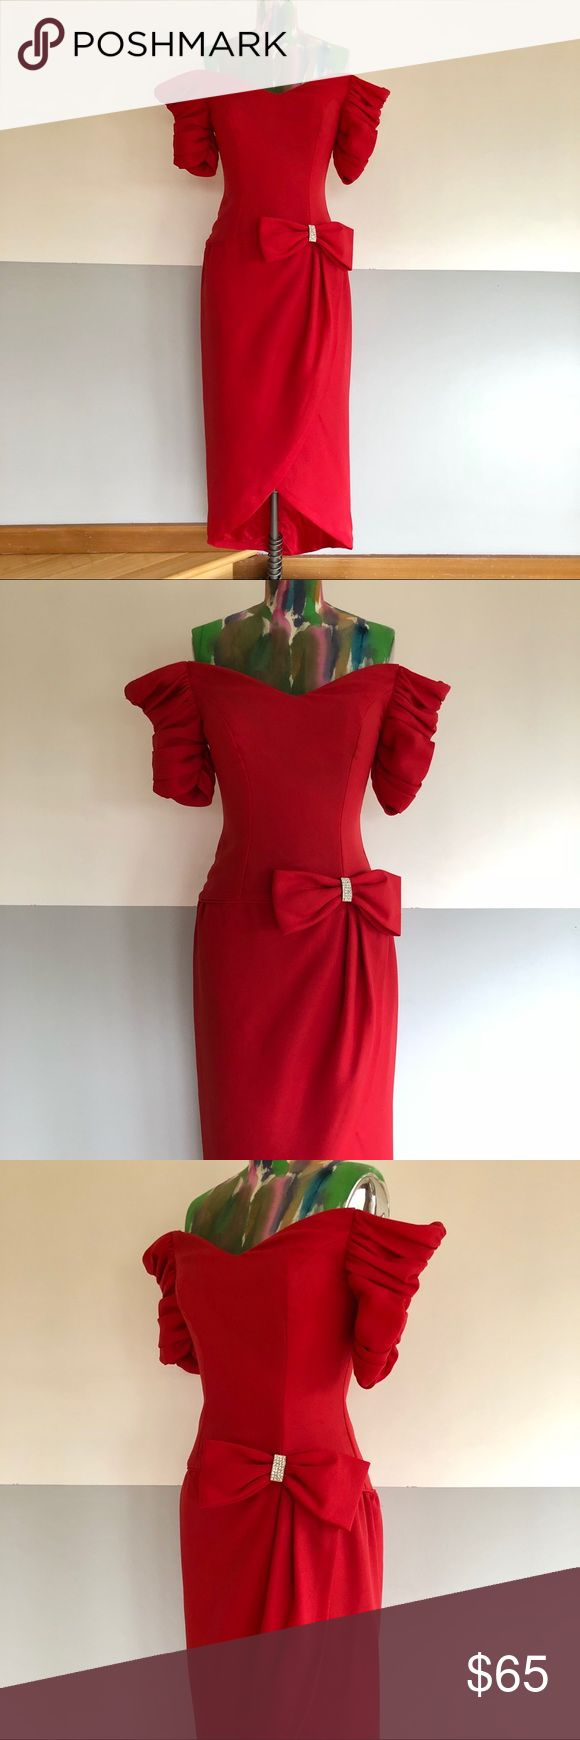 """VINTAGE 80s Red Crepe Cocktail Dress Stunning true red cocktail dress by Jordan.  Tulip skirt with rhinestone bow accent.  Gathered off-the-shoulder sleeves, perfectly on trend!  Elastic shoulder straps are sewn in (would recommend cutting them out!).  Near perfect condition, a few tiny pulls in fabric but overall AMAZING condition. Fully lined. Perfect for Valentine's Day!  Underarm Width: 30"""" Shoulder Width (top of sleeve): 44"""" Natural waist: 26"""" Front Length (top of dress to hem): 41""""…"""